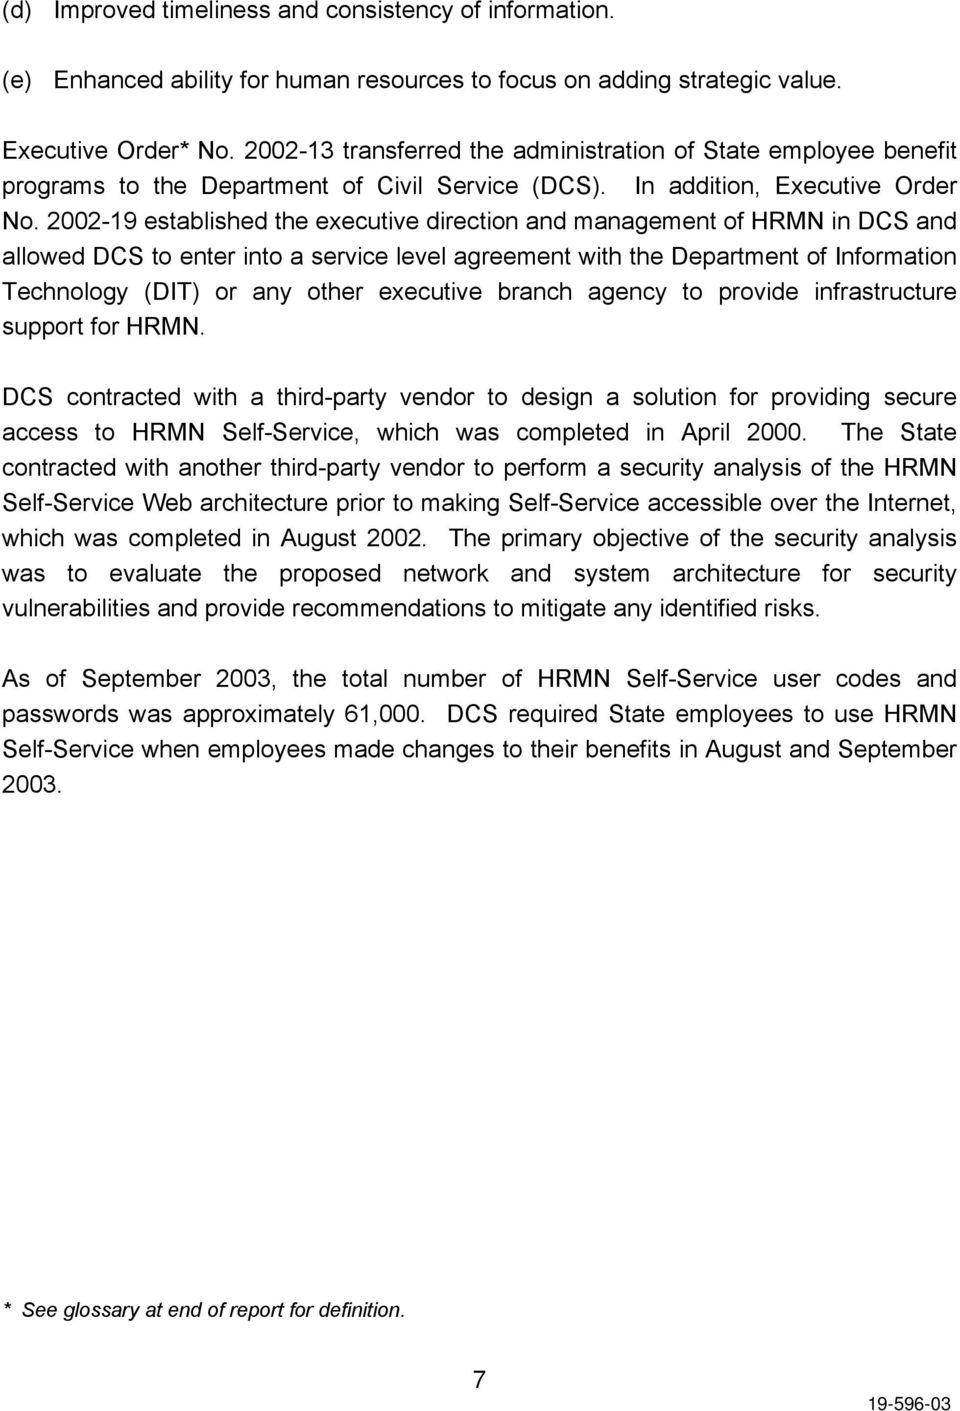 2002-19 established the executive direction and management of HRMN in DCS and allowed DCS to enter into a service level agreement with the Department of Information Technology (DIT) or any other